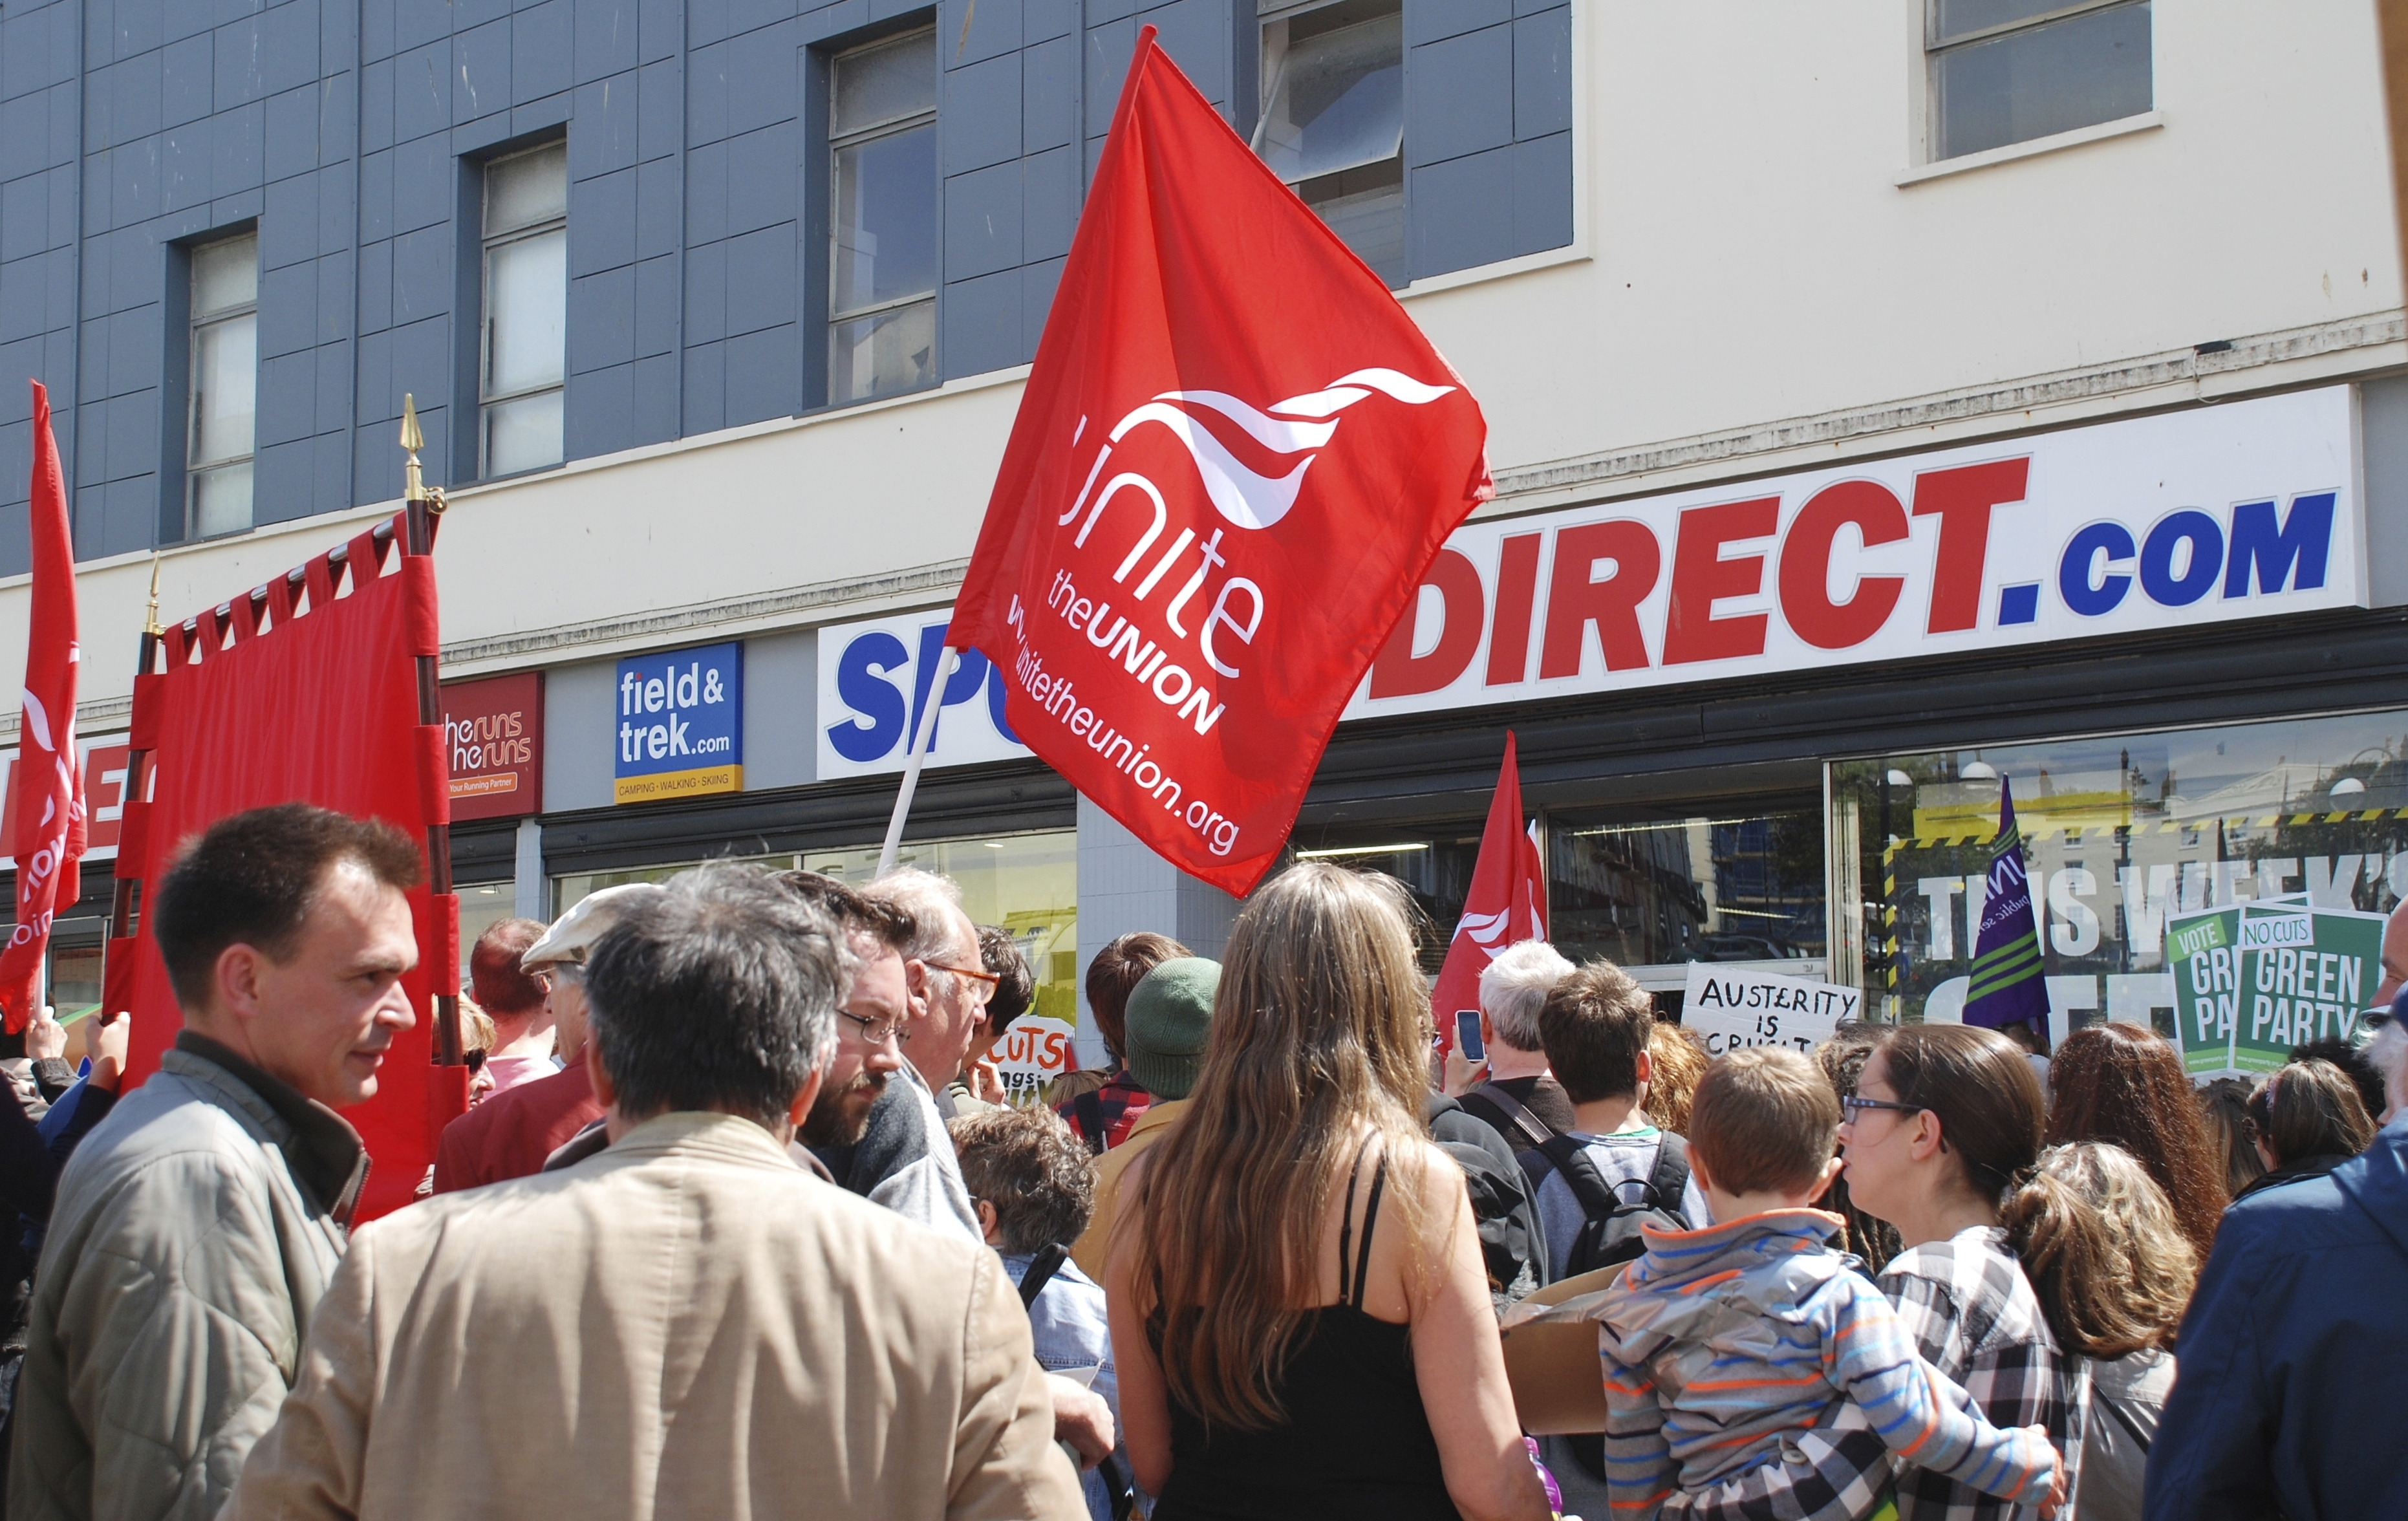 People protest against zero hour employment contracts outside a branch of Sports Direct in Hastings.